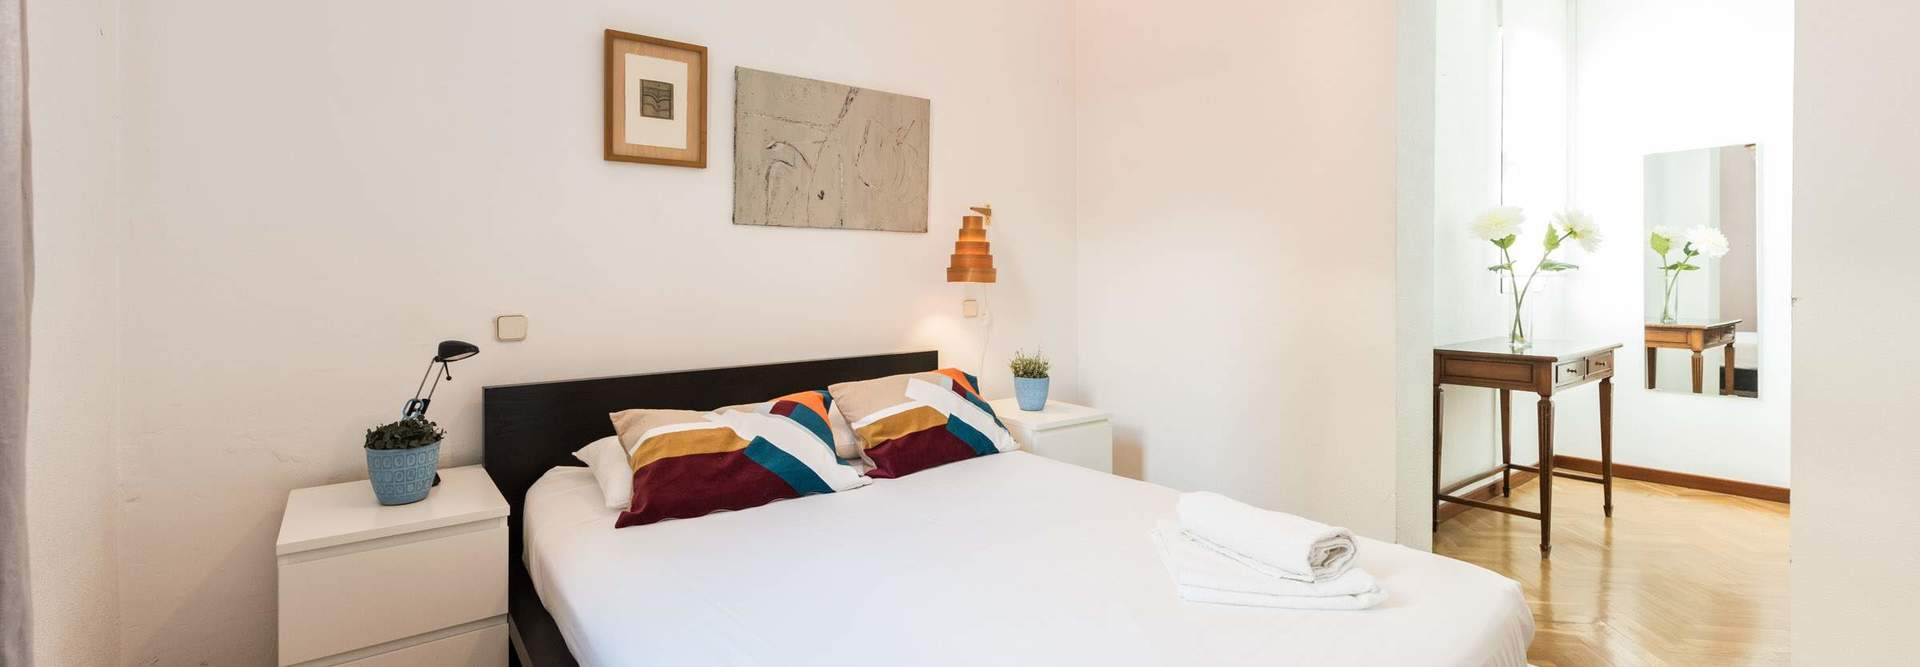 Home alquiler apartamento por d as madrid centro  5